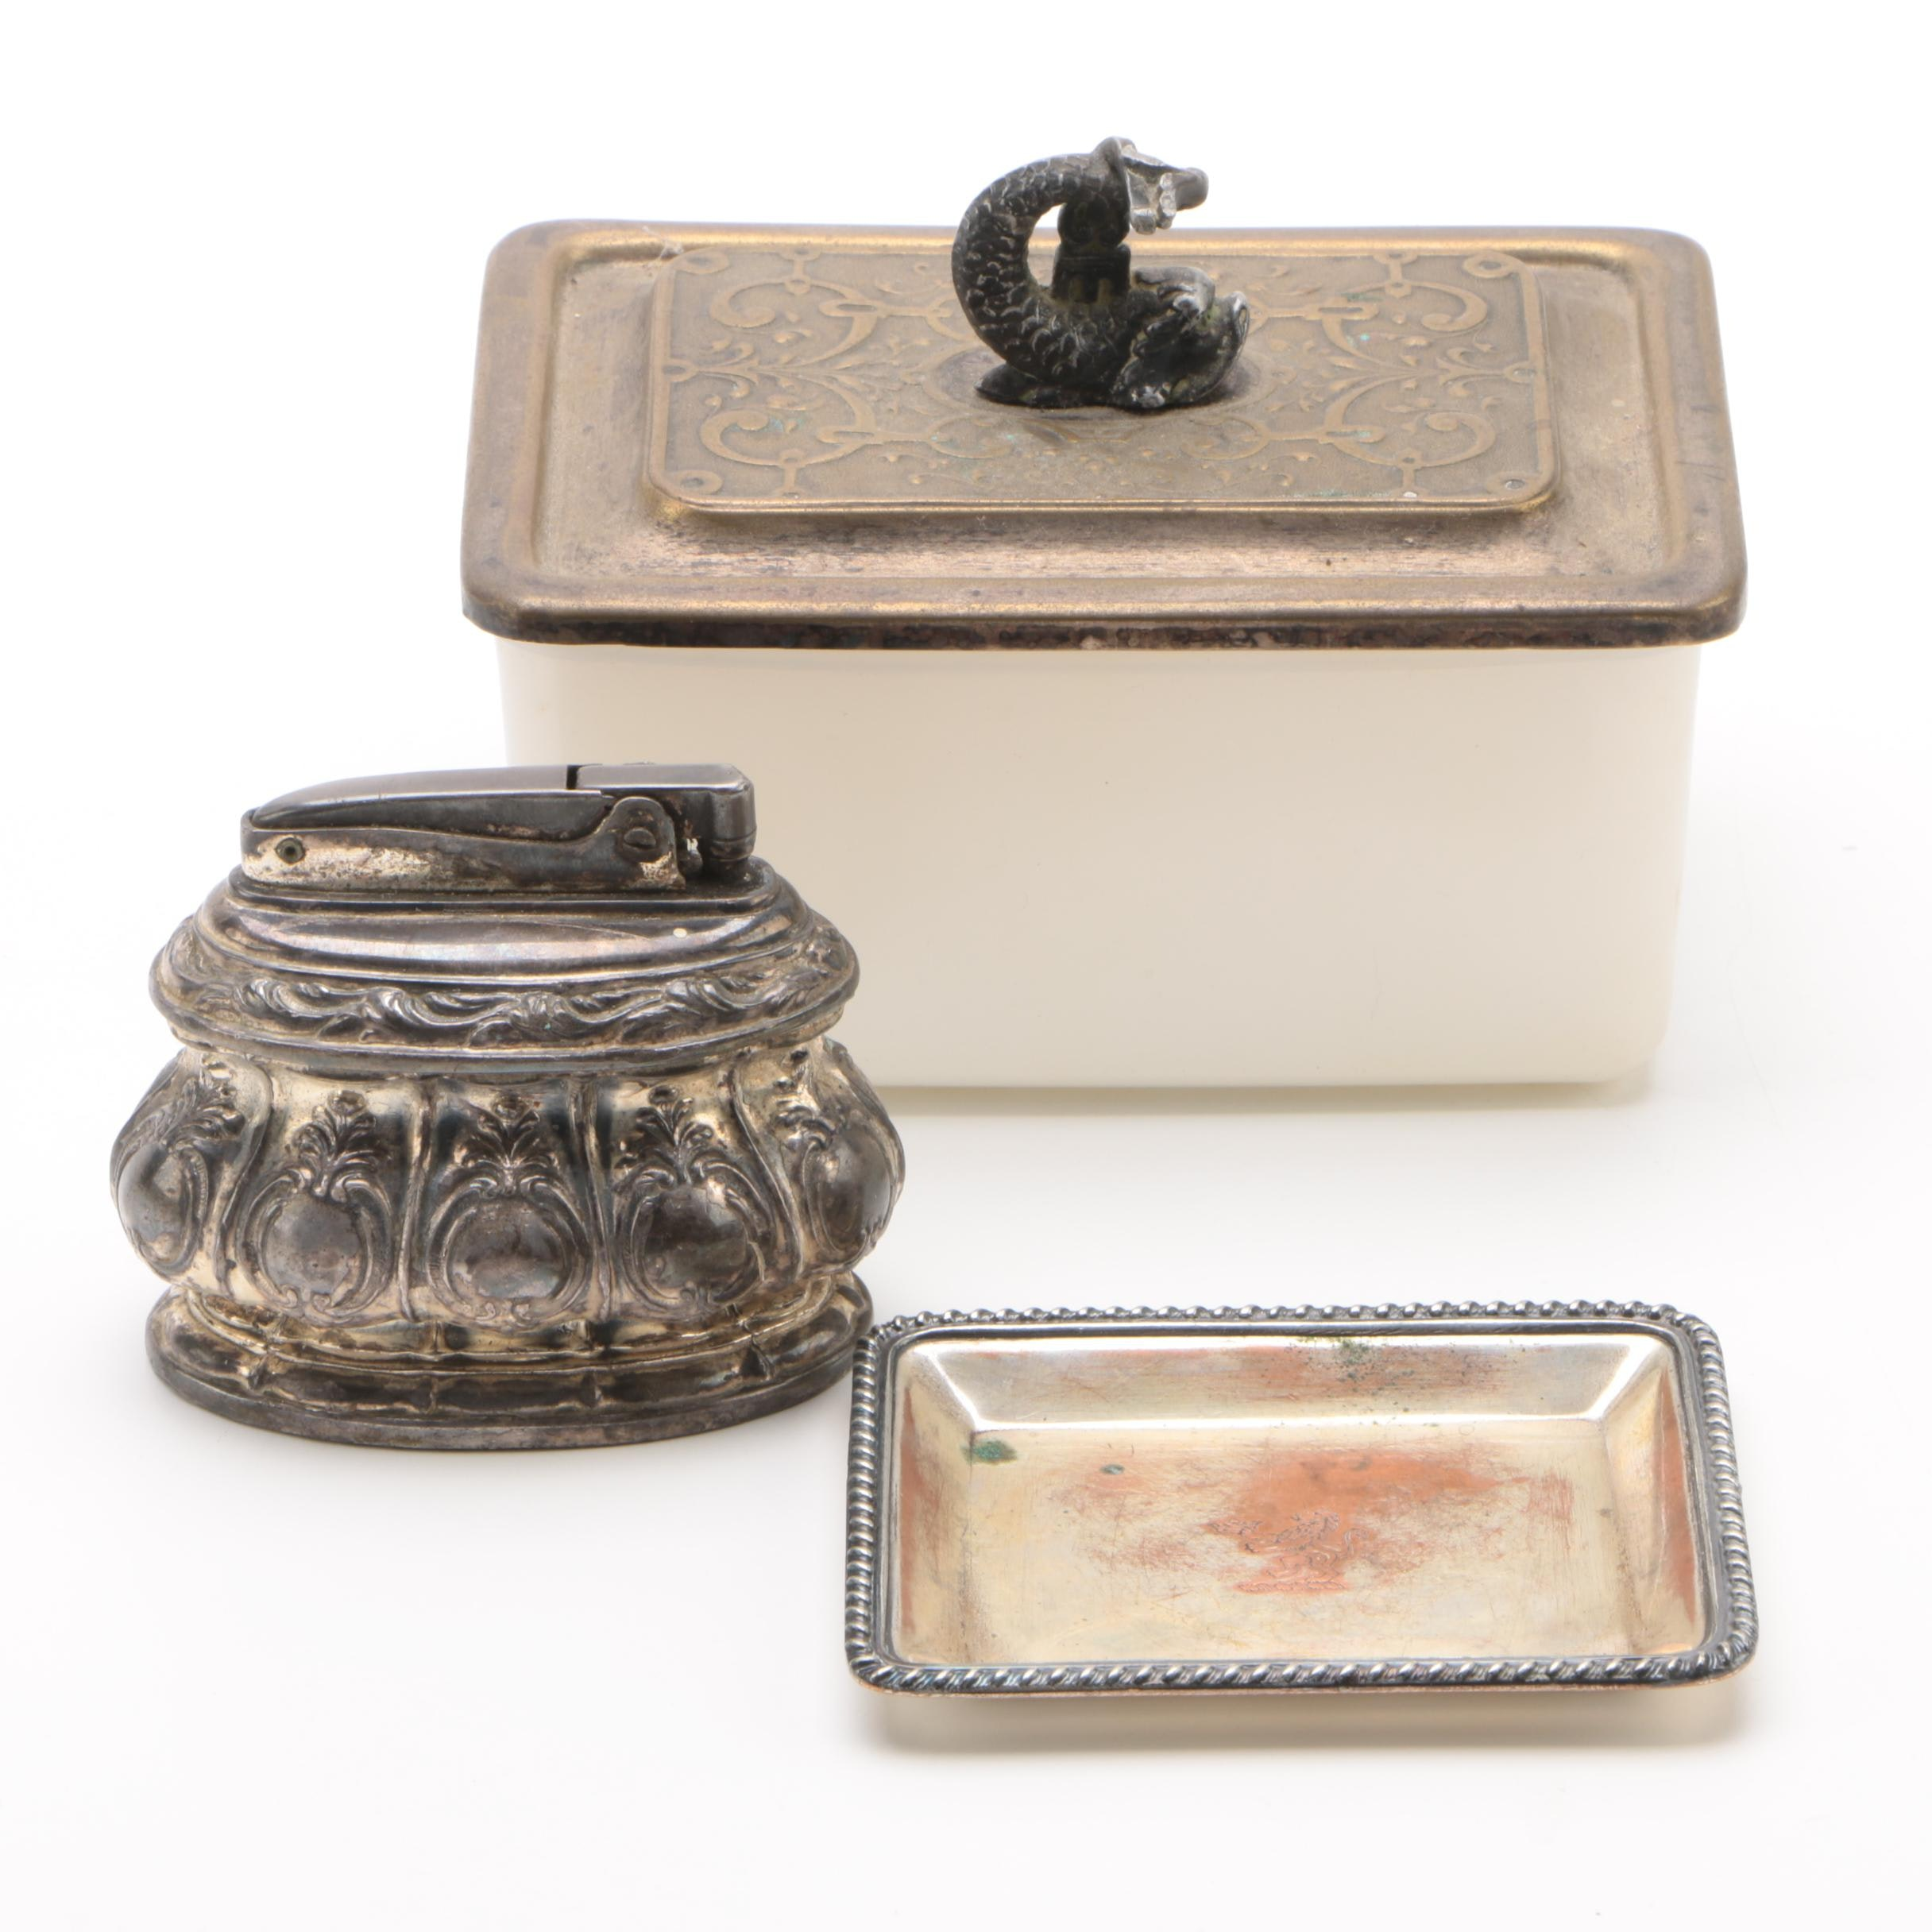 """Ronson """"Regal"""" Silver Plate Table Lighter with Exter Sardine Box and Dish"""